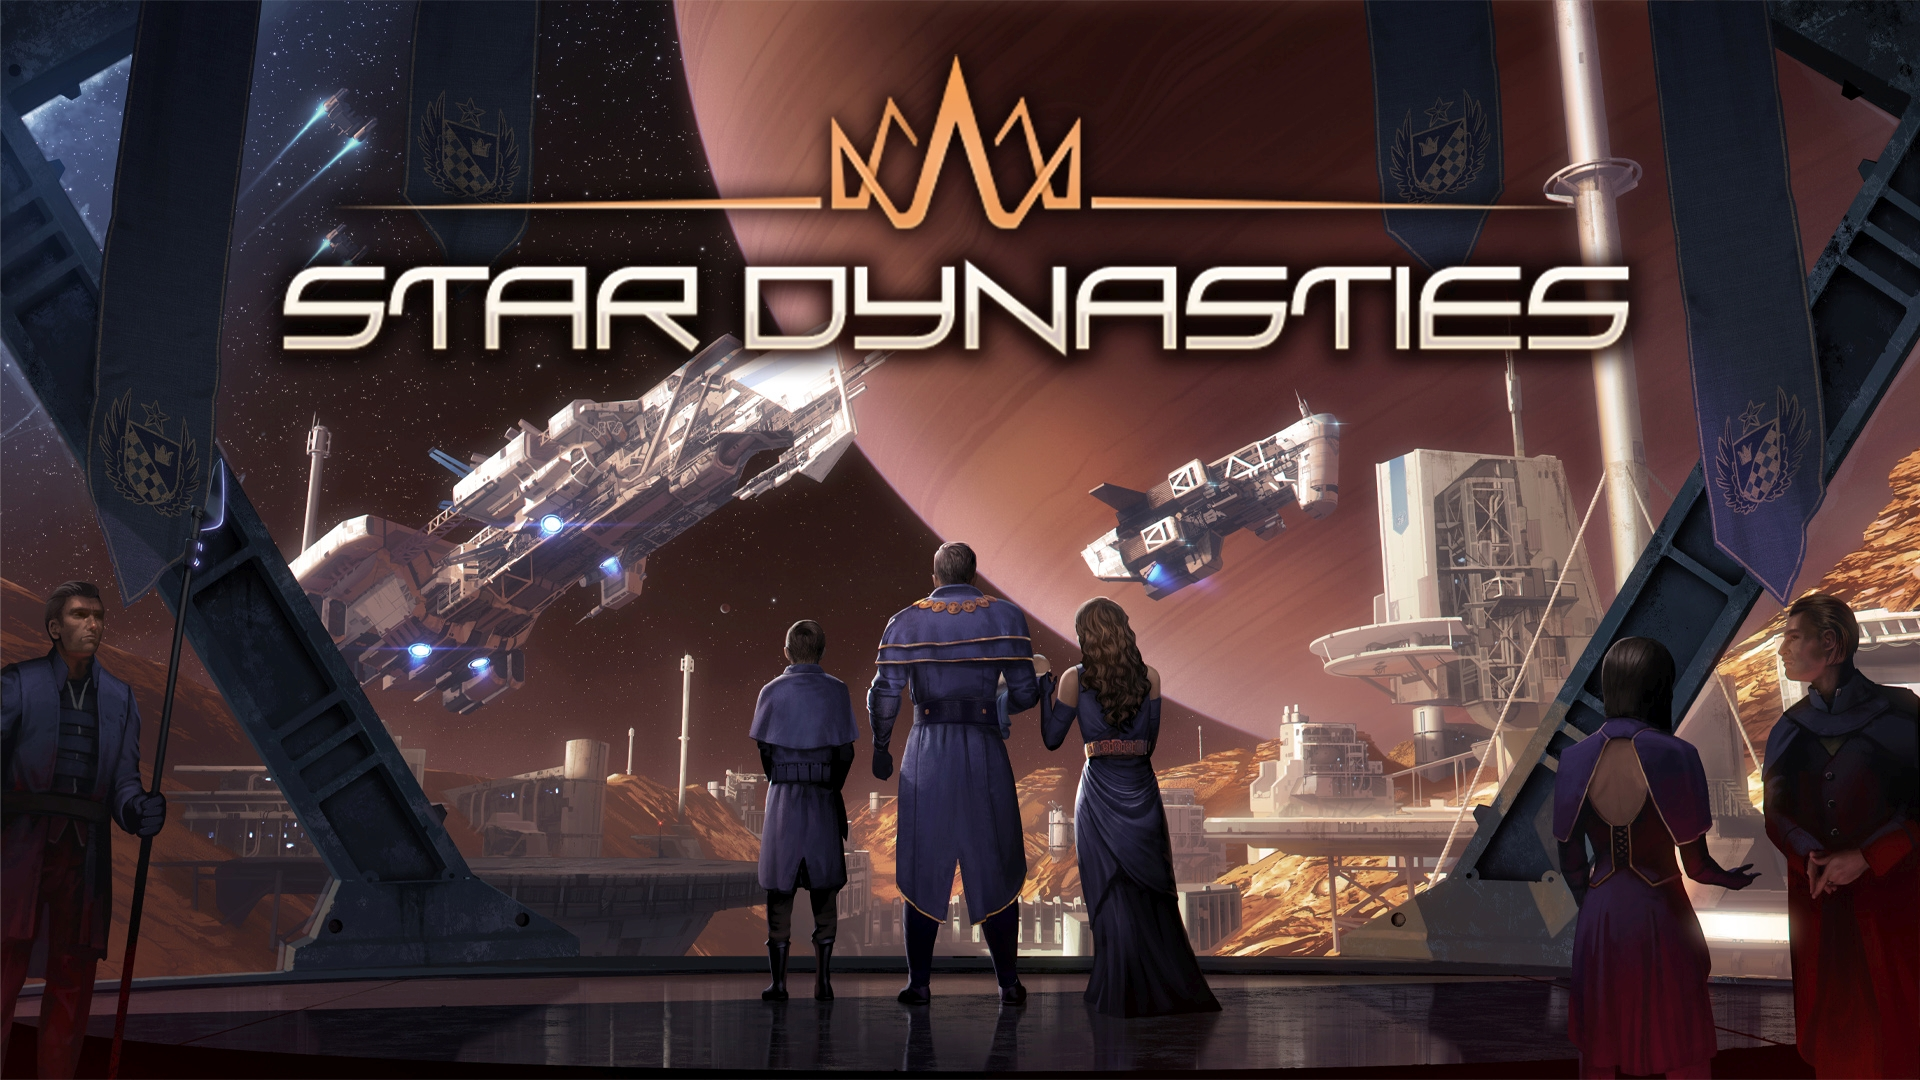 Get a Hands-On and Conquer the Galaxy in Star Dynasties